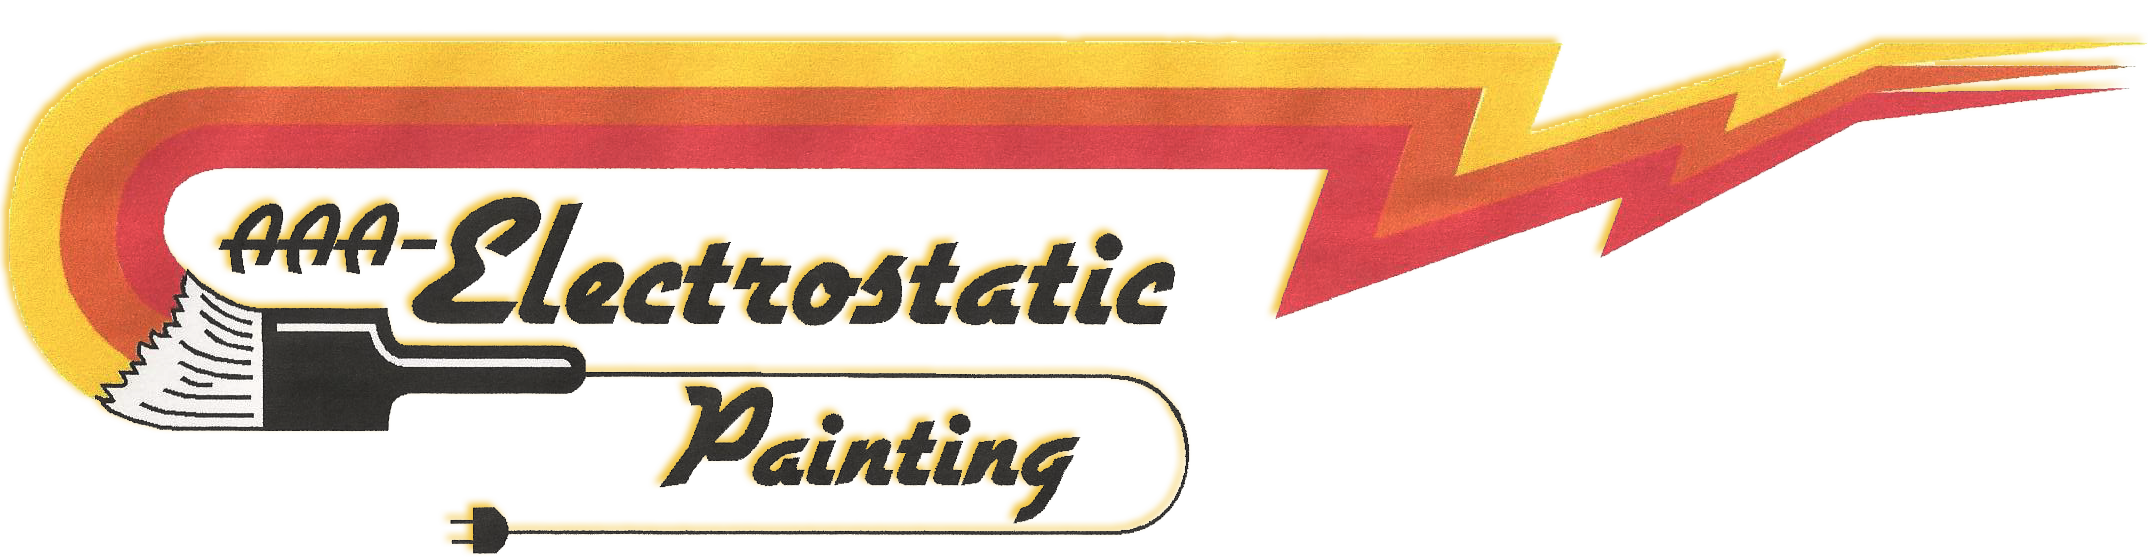 Electrostatic Painting and Bathtub Refinishing in Omaha and surrounding  areas  AAA Electrostatic Painting logo. Home   Lincoln Electrostatic Painting and Bathtub Refinishing